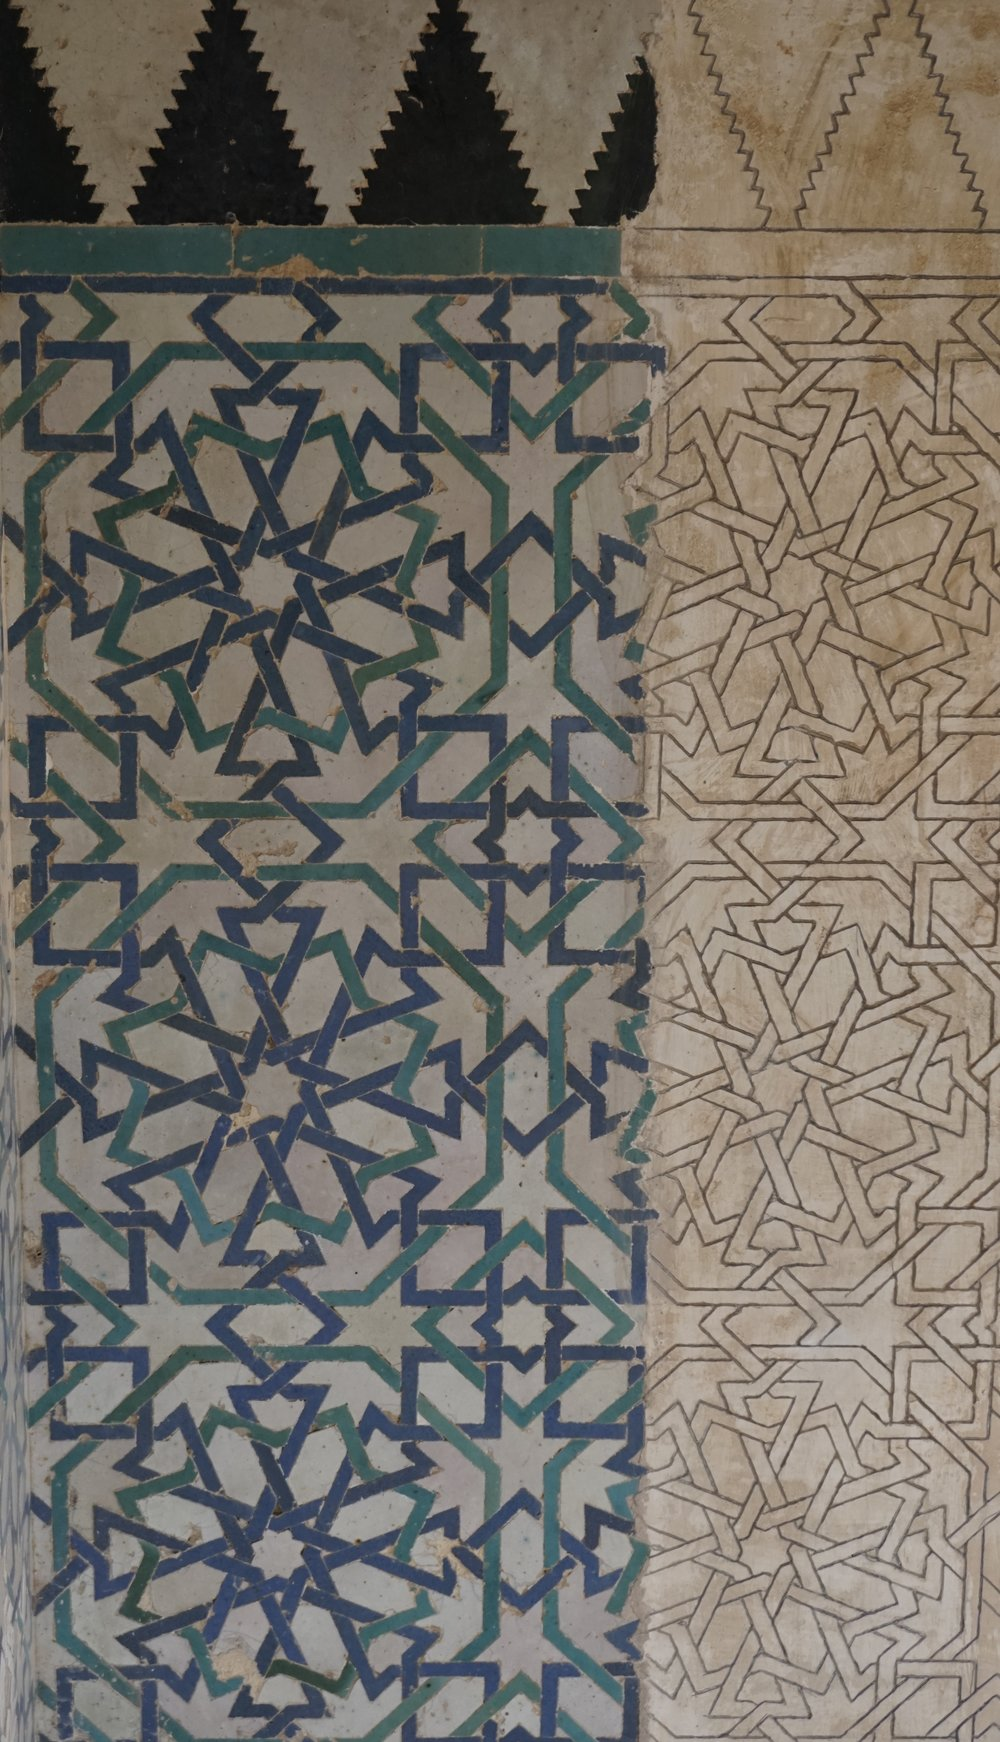 Tile details from the Alhambra